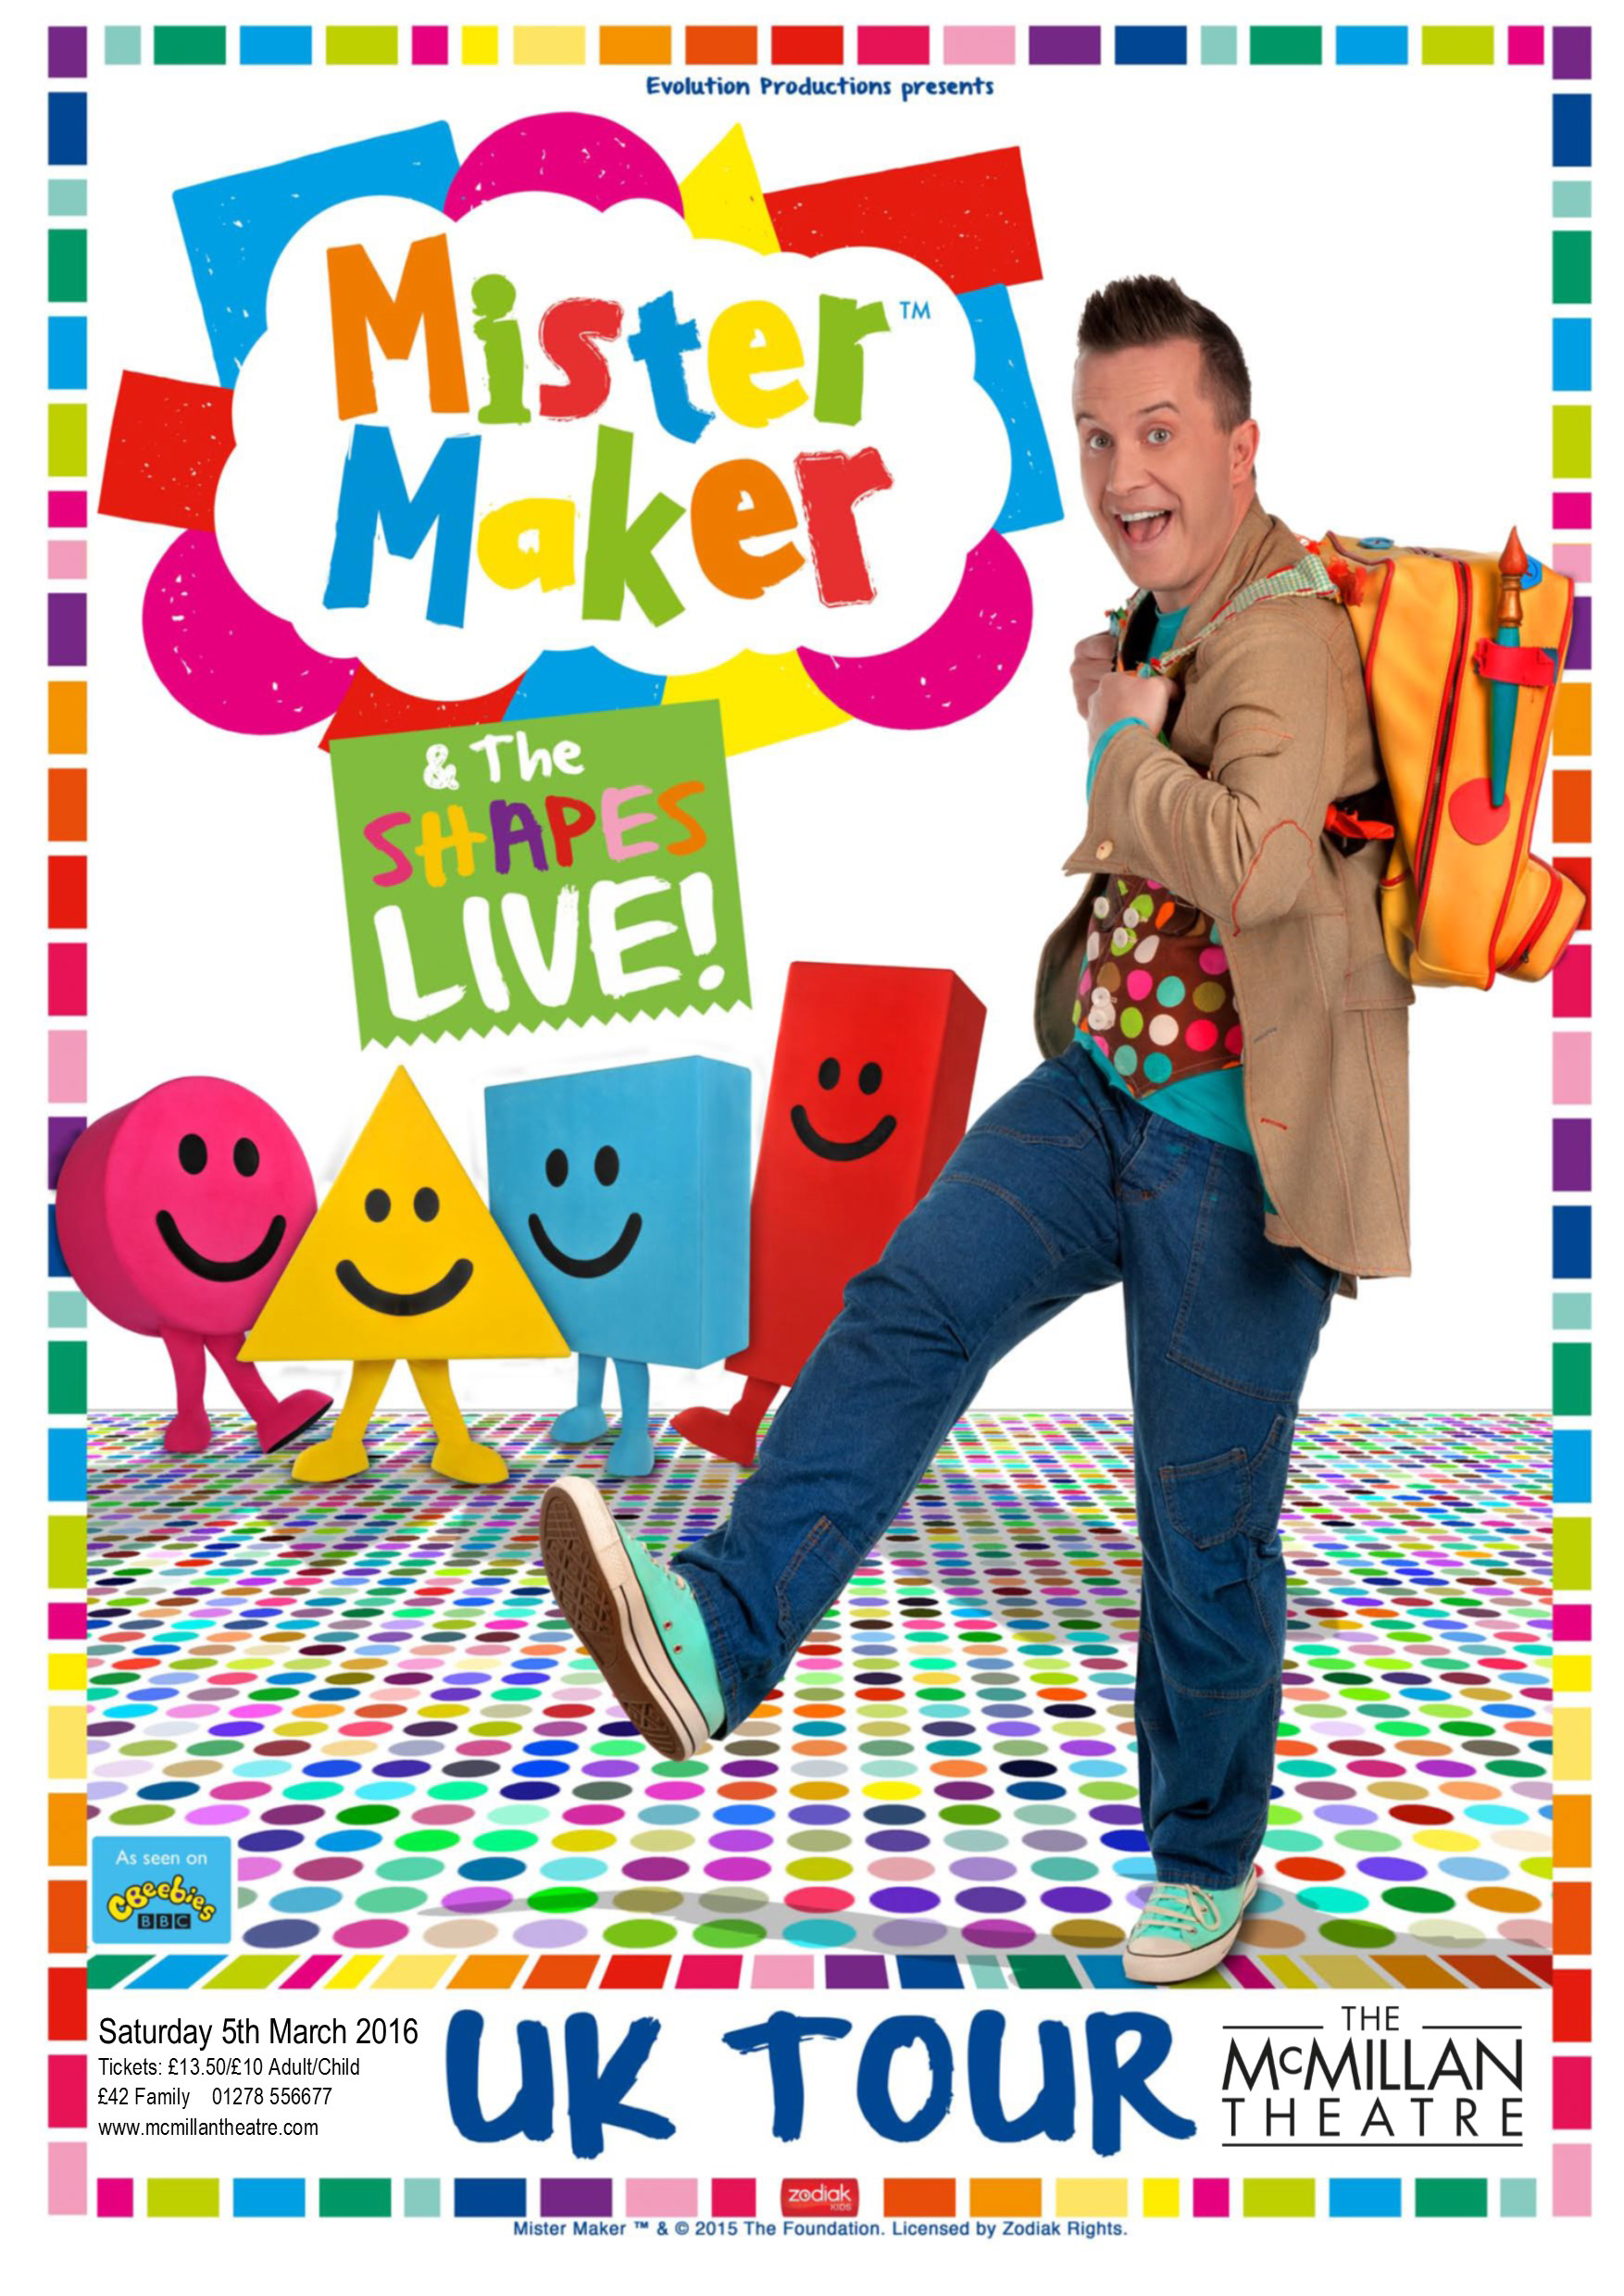 Mister Maker and The Shapes Live at The McMillan Theatre